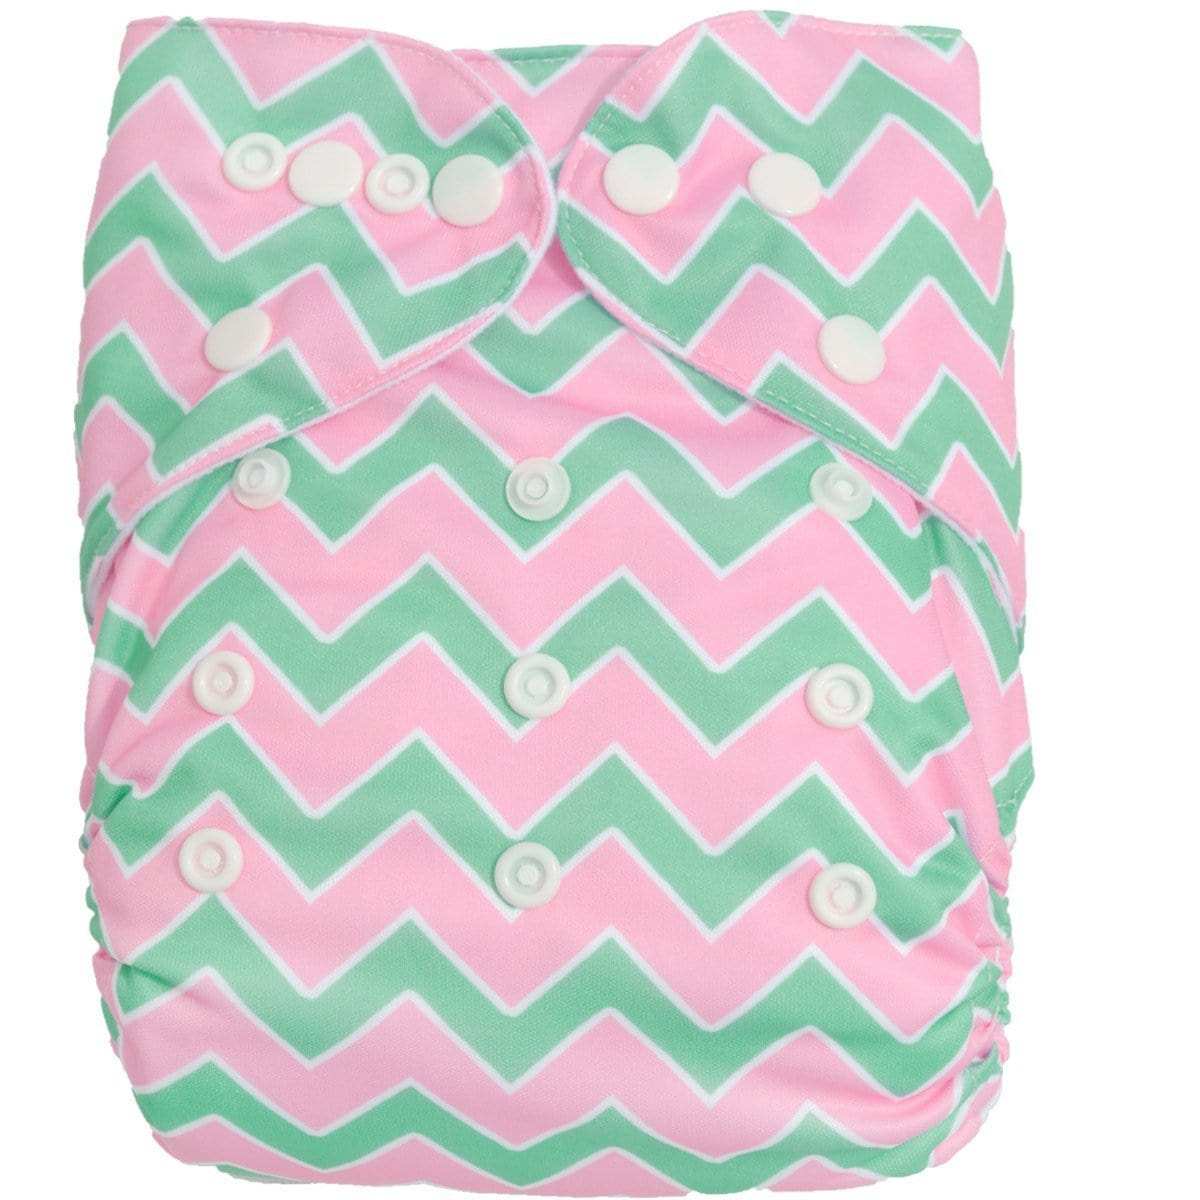 Express the Best Cloth Re-usable Nappy Pack - Pink and Blue Zig Zags - Naked Baby Eco Boutique